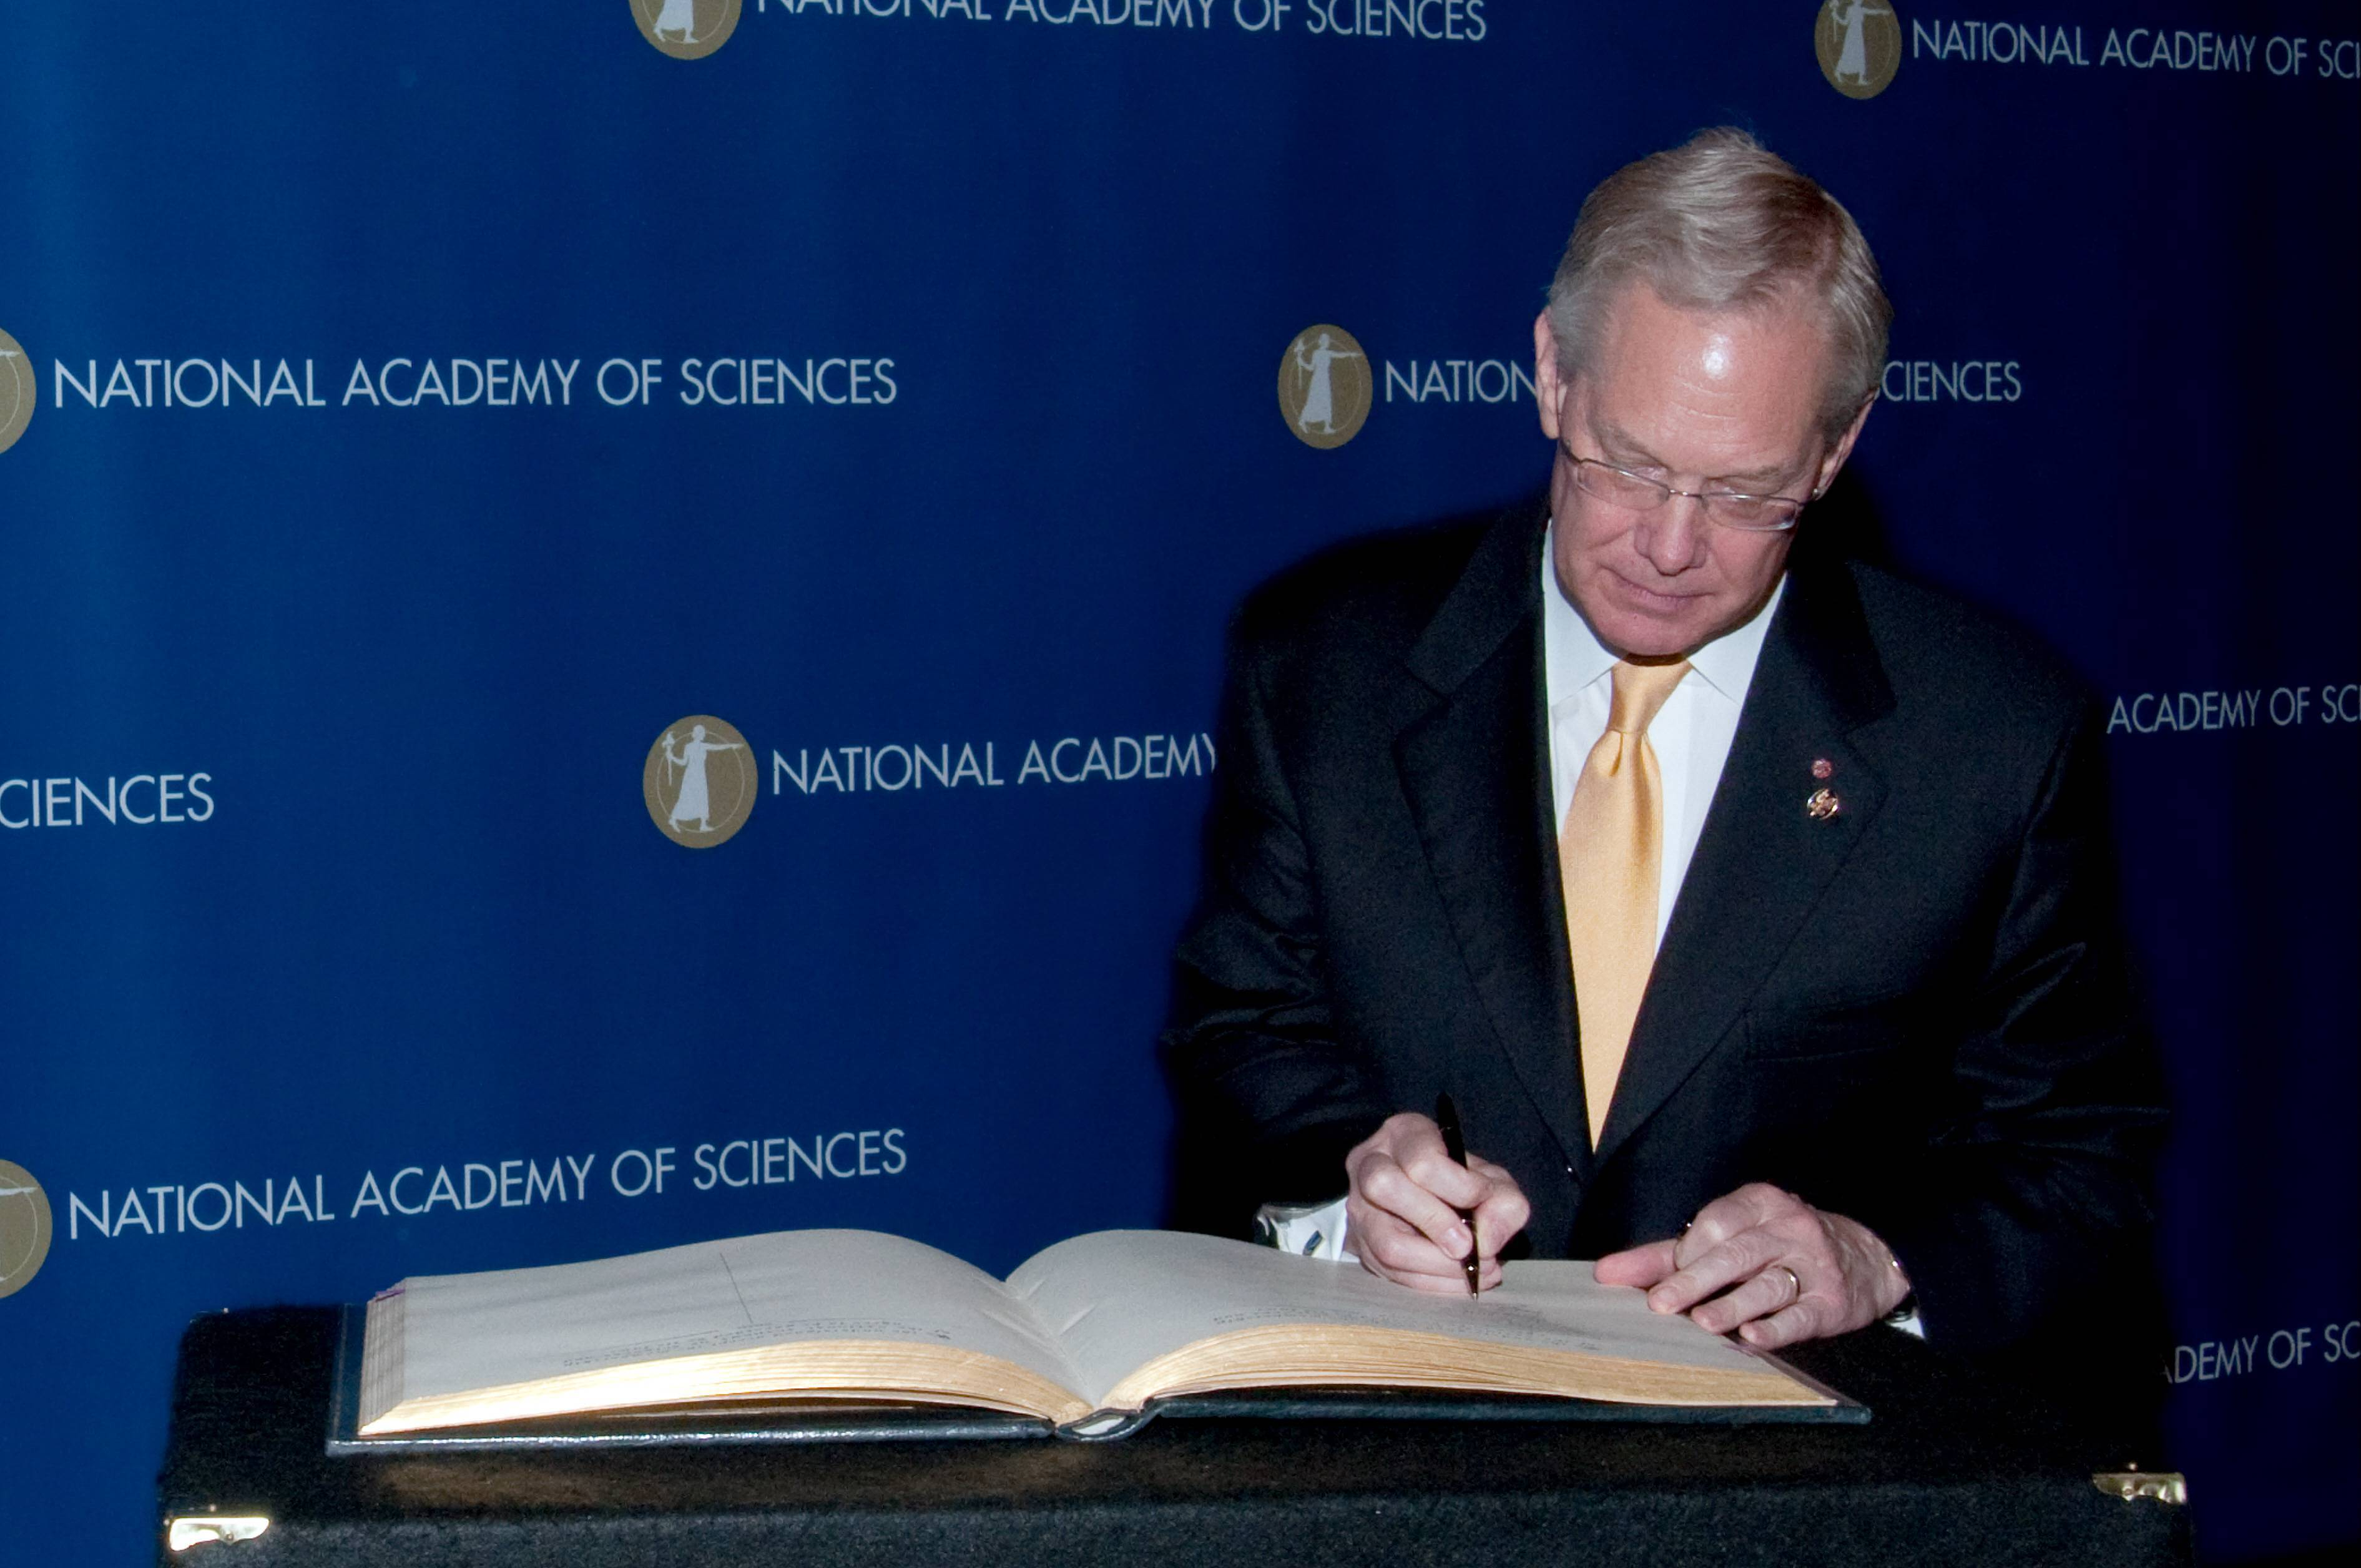 V. Craig Jordan, Ph.D., is inducted into the National Academy of Sciences